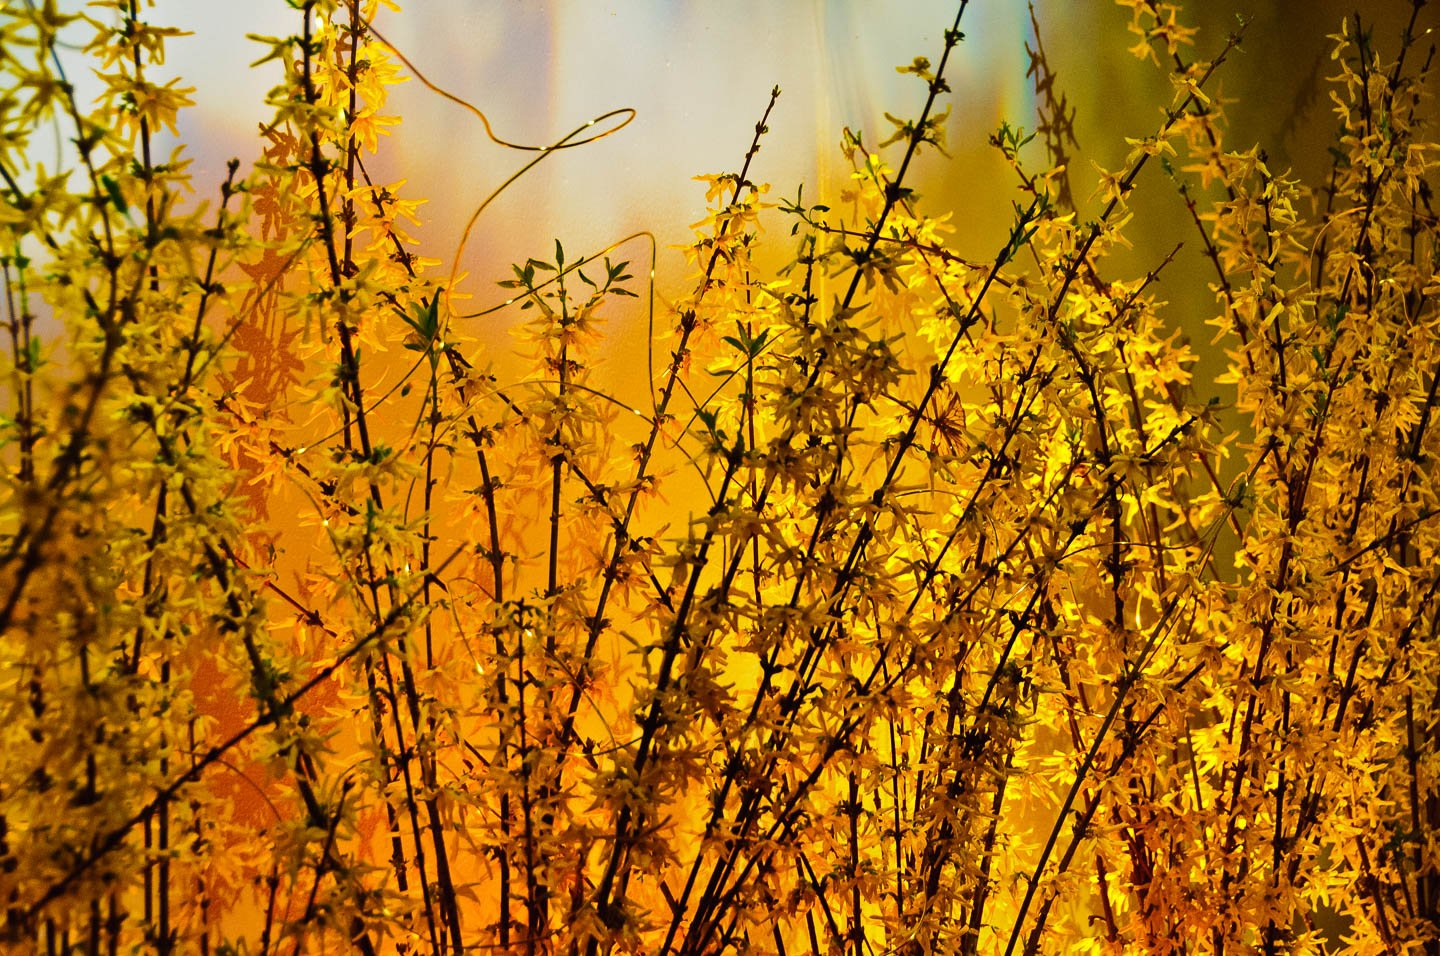 Forsythia-photos-6619